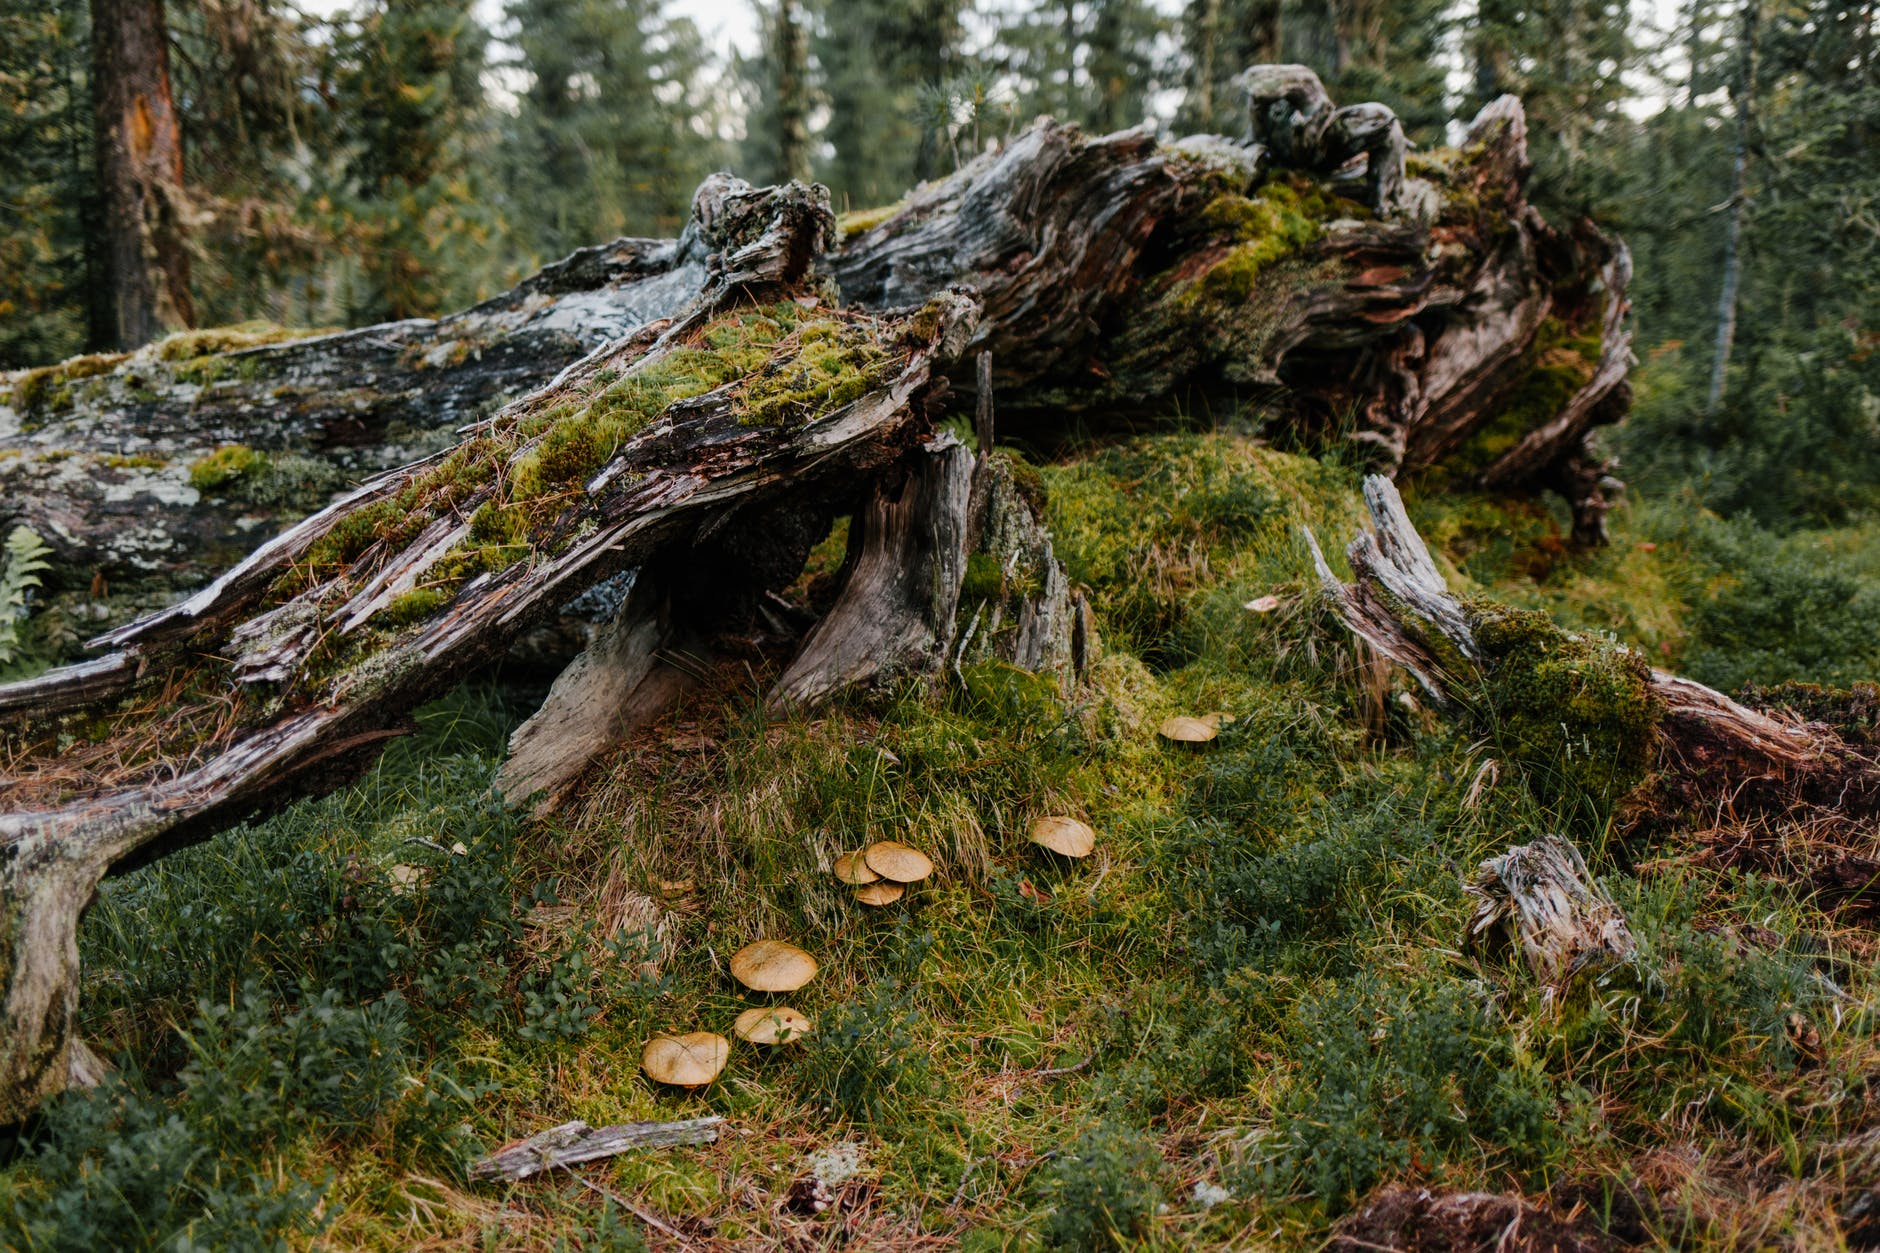 old tree covered with green moss near fresh grass with mushrooms